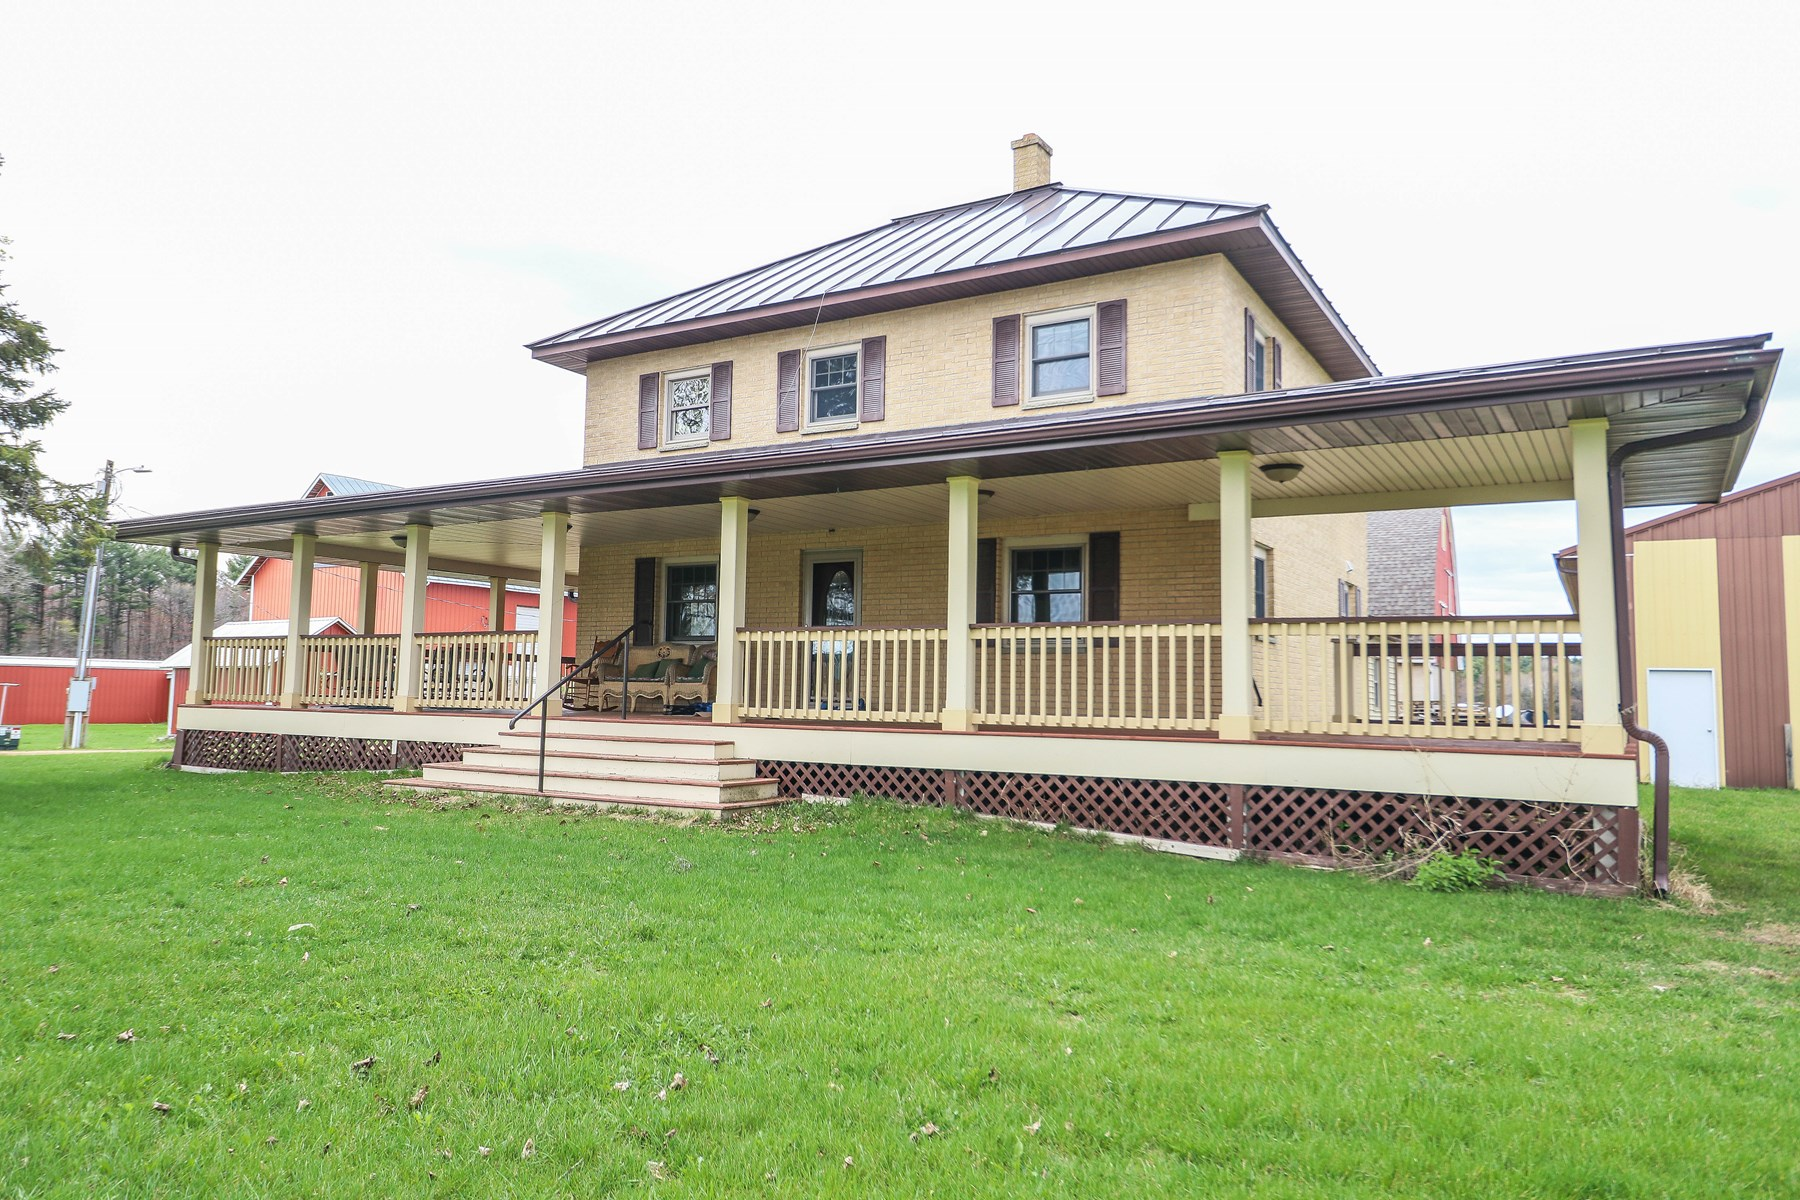 Gorgeous Country Home for Sale in Iola, WI